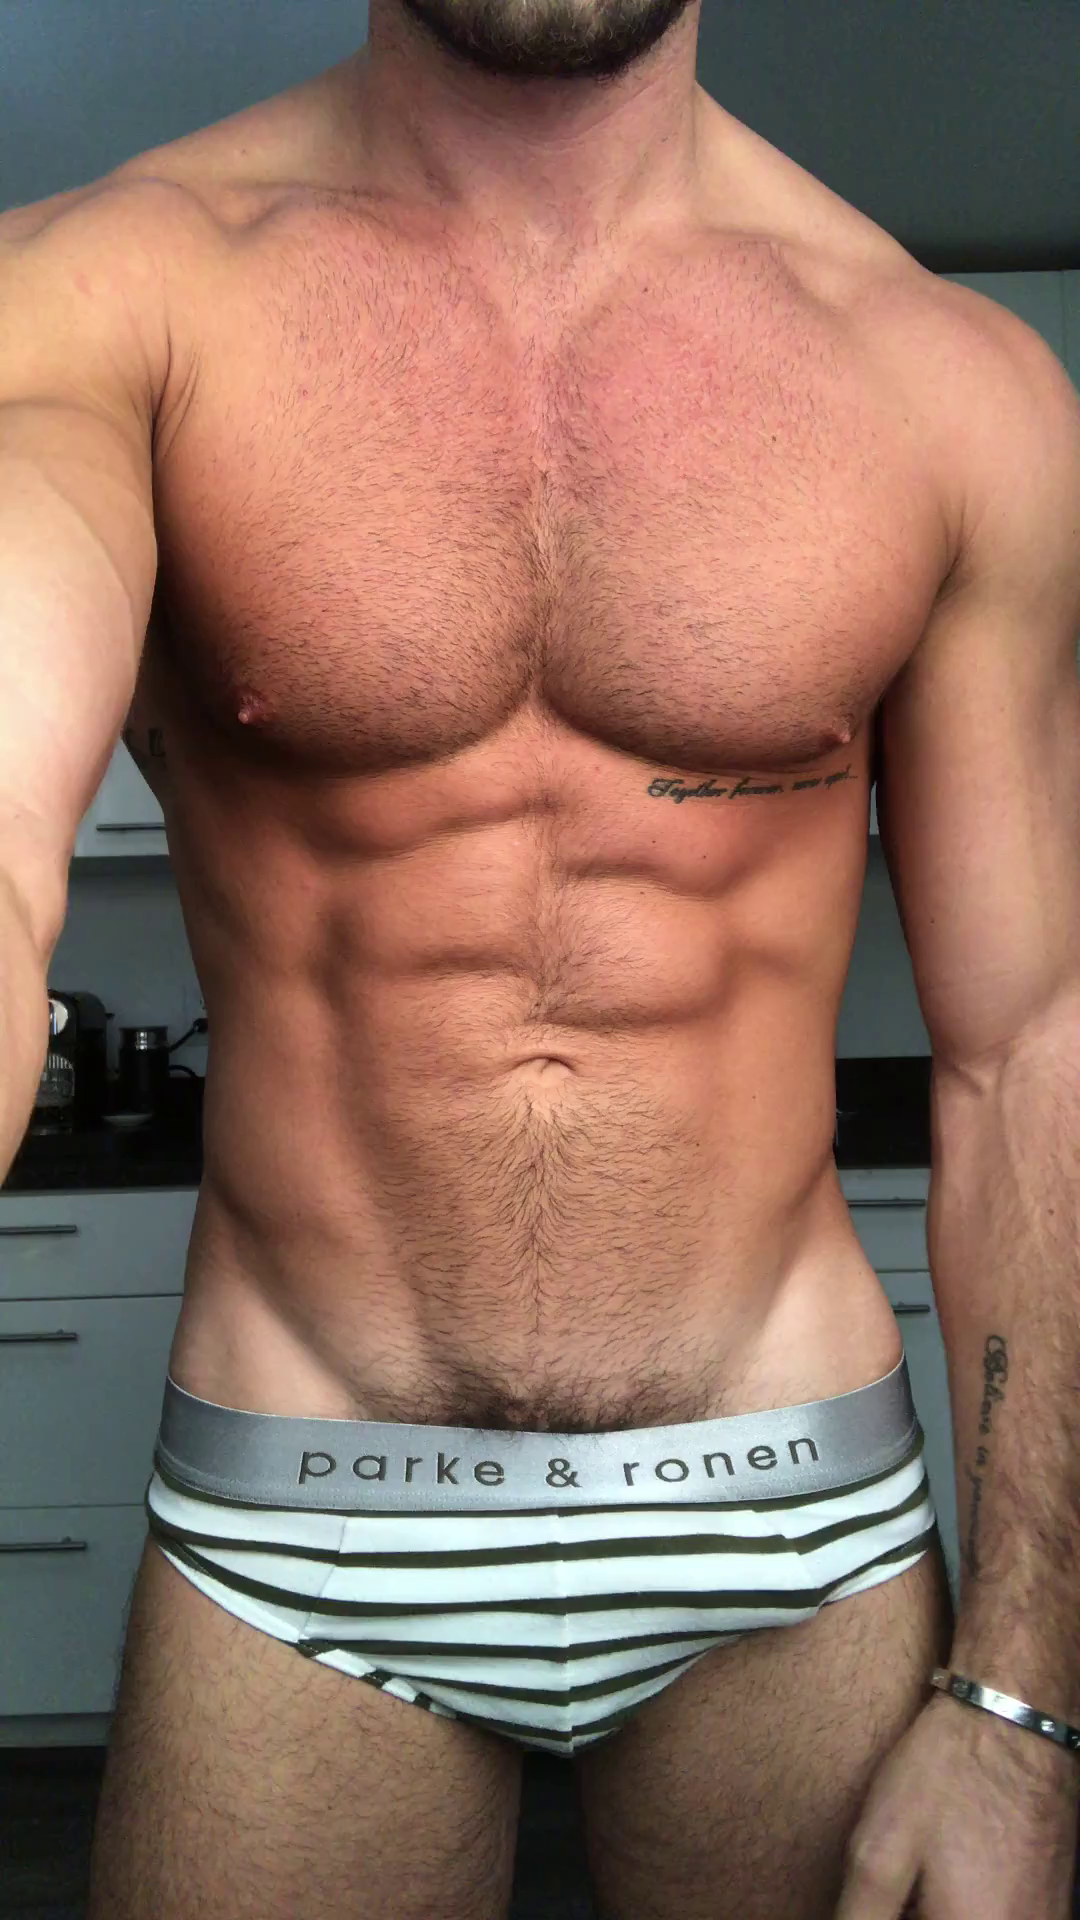 Anthony Pecoraro showing off his body and teasing his cock